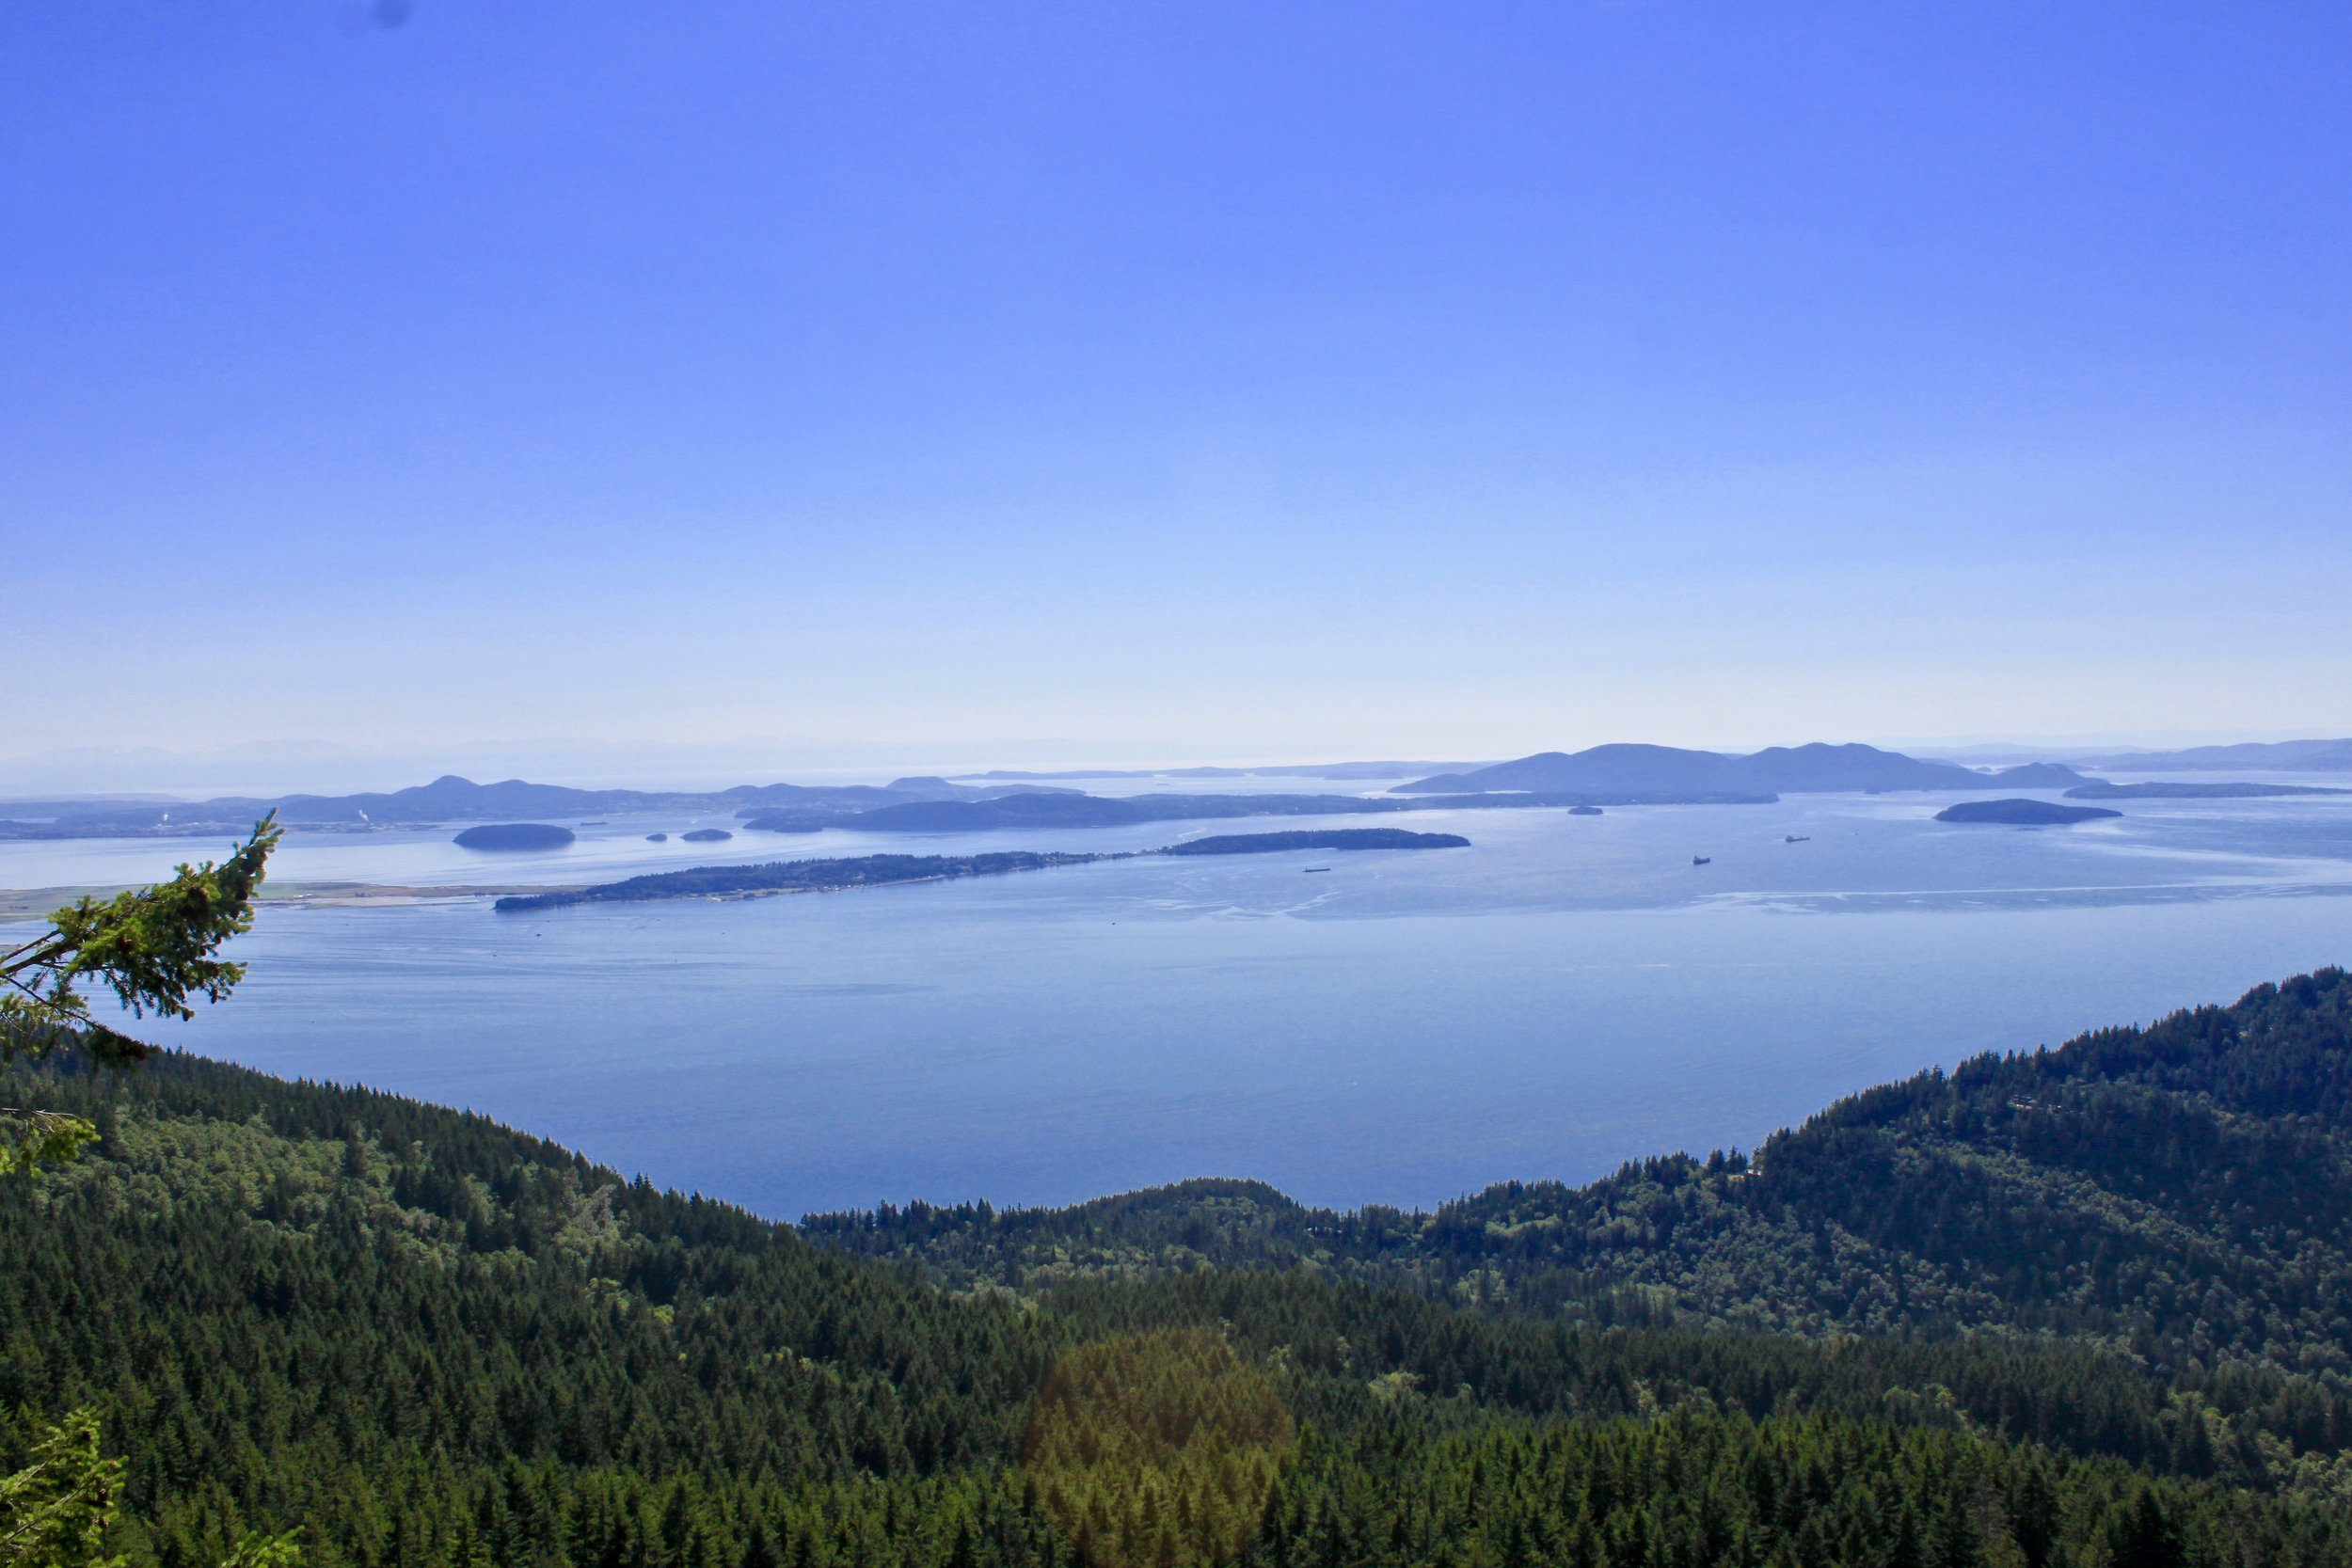 View at the top of Oyster Dome.